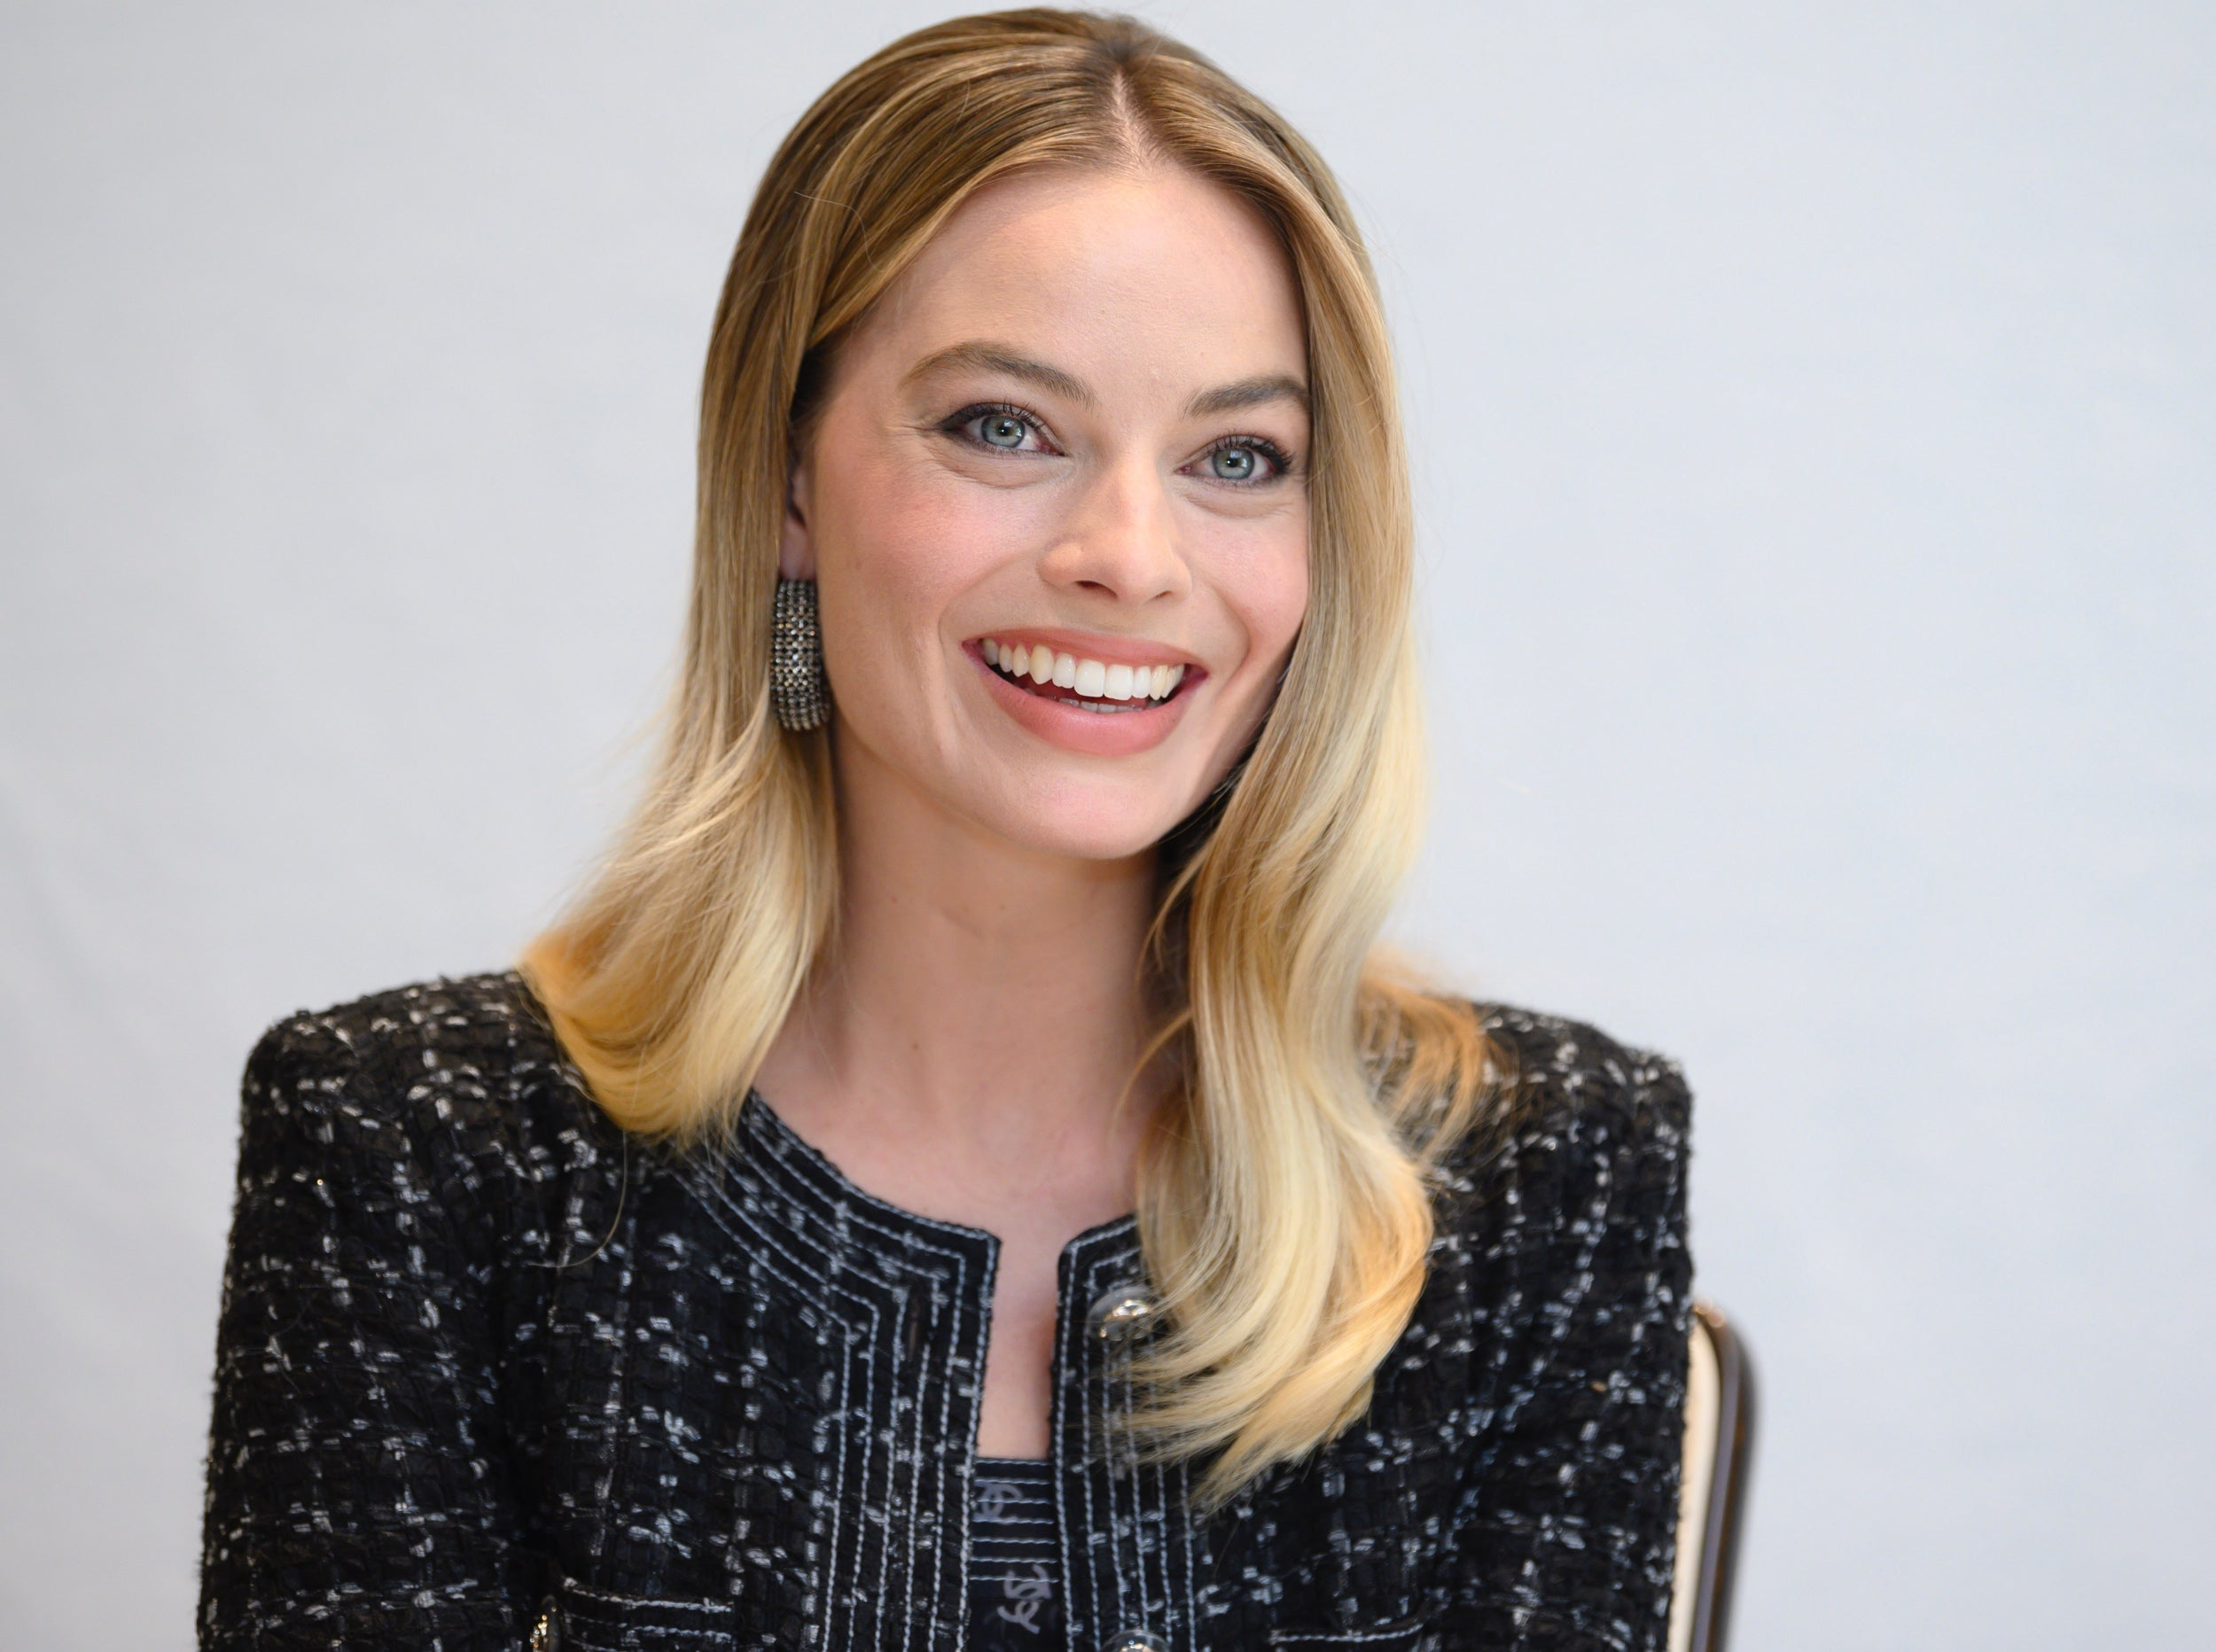 Actress Margot Robbie. Golden Globe nominee